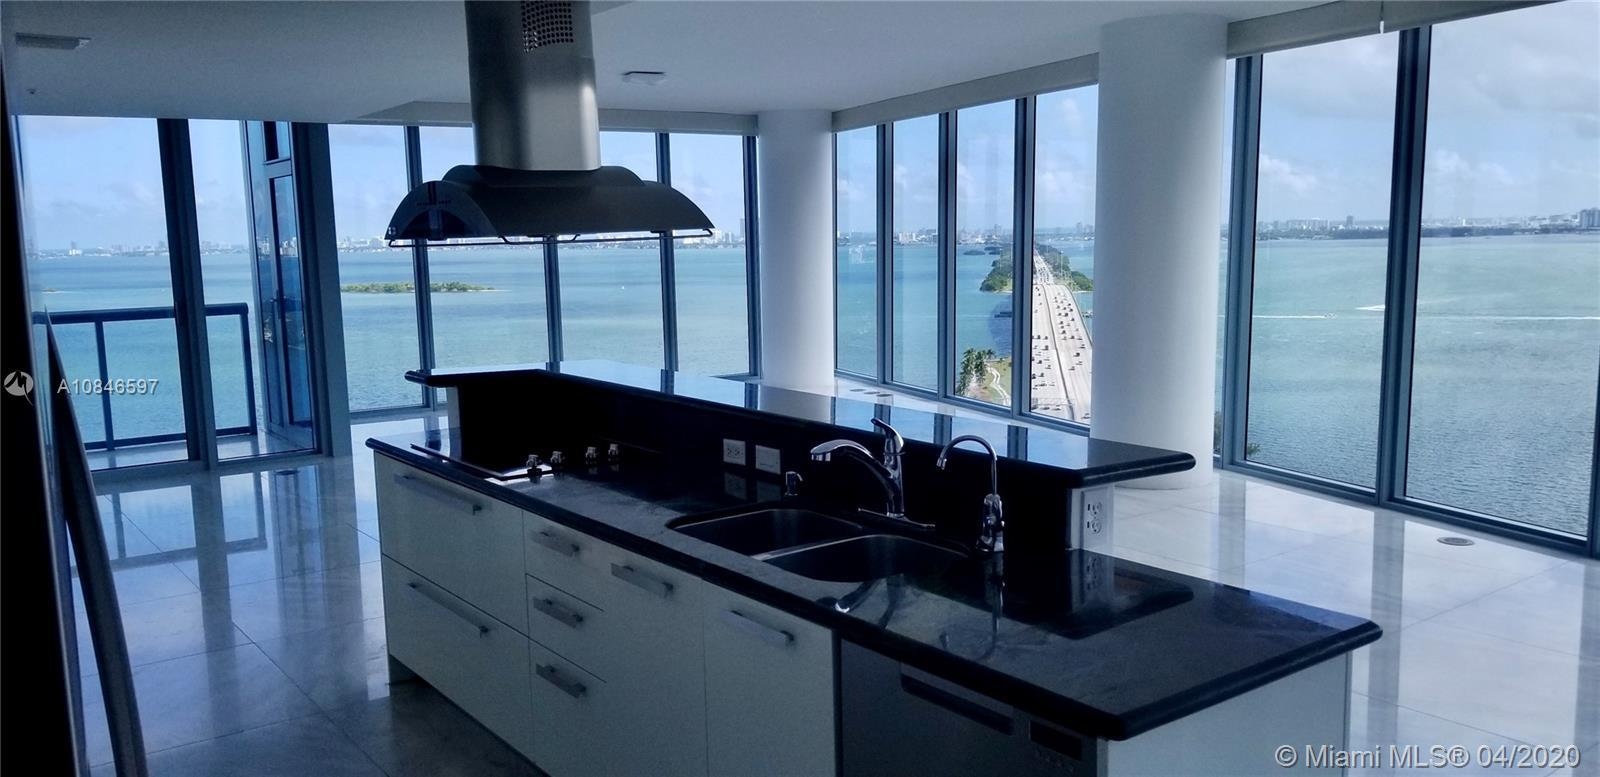 Enchanting line 12 unit w/spectacular views of Miami. Marble floors, Mahogany doors, stainless steel